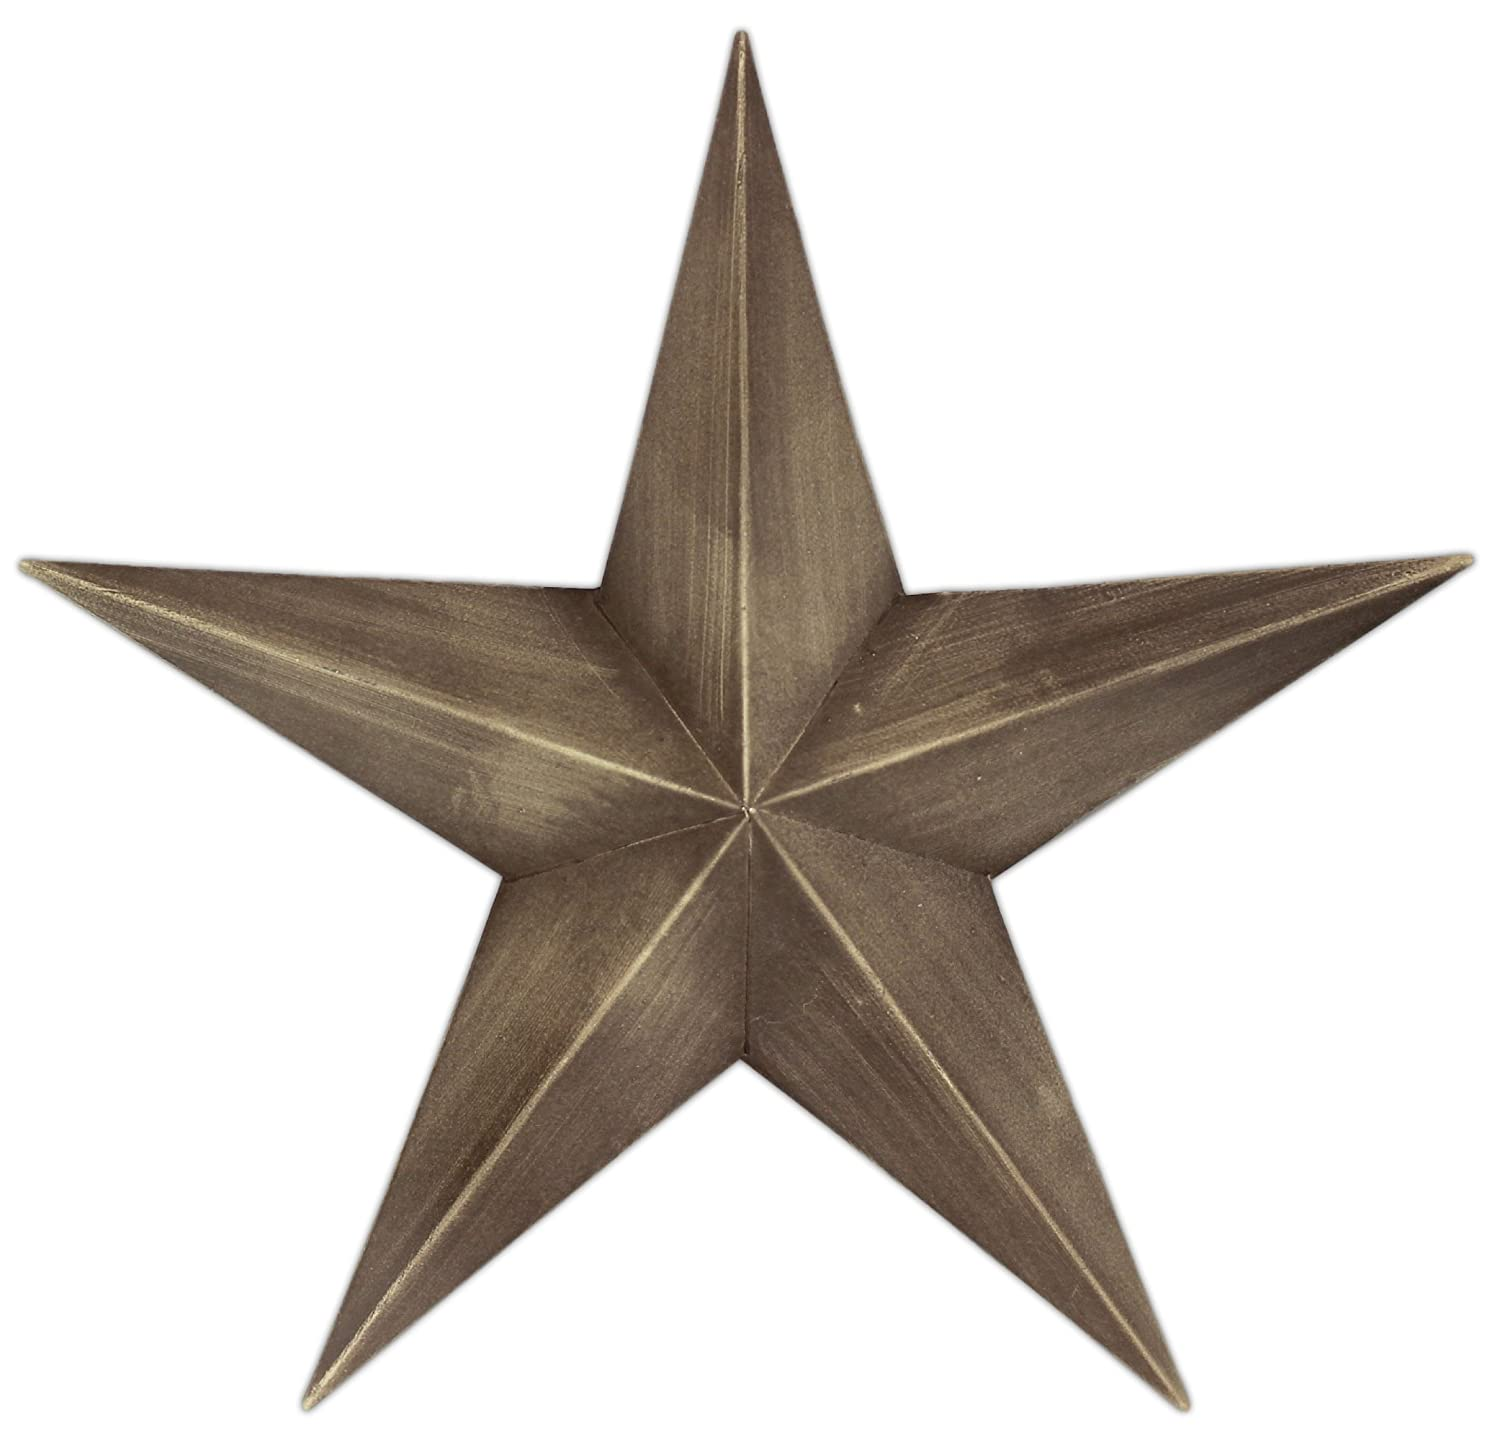 Western star metal wall decor home rustic primitive gift for Barn star decorations home